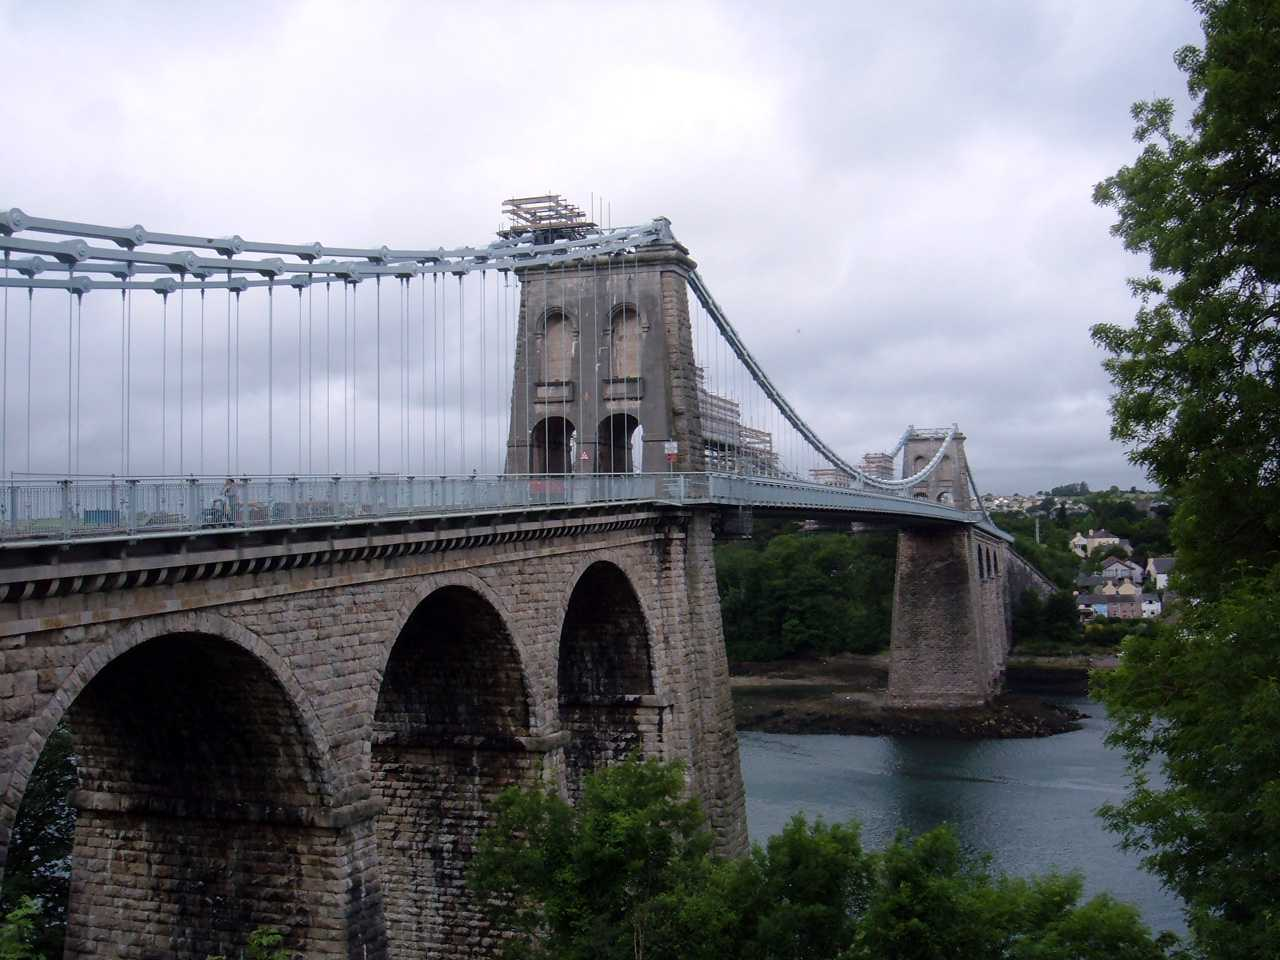 TheMenai Suspension Bridge being re-painted in 2005